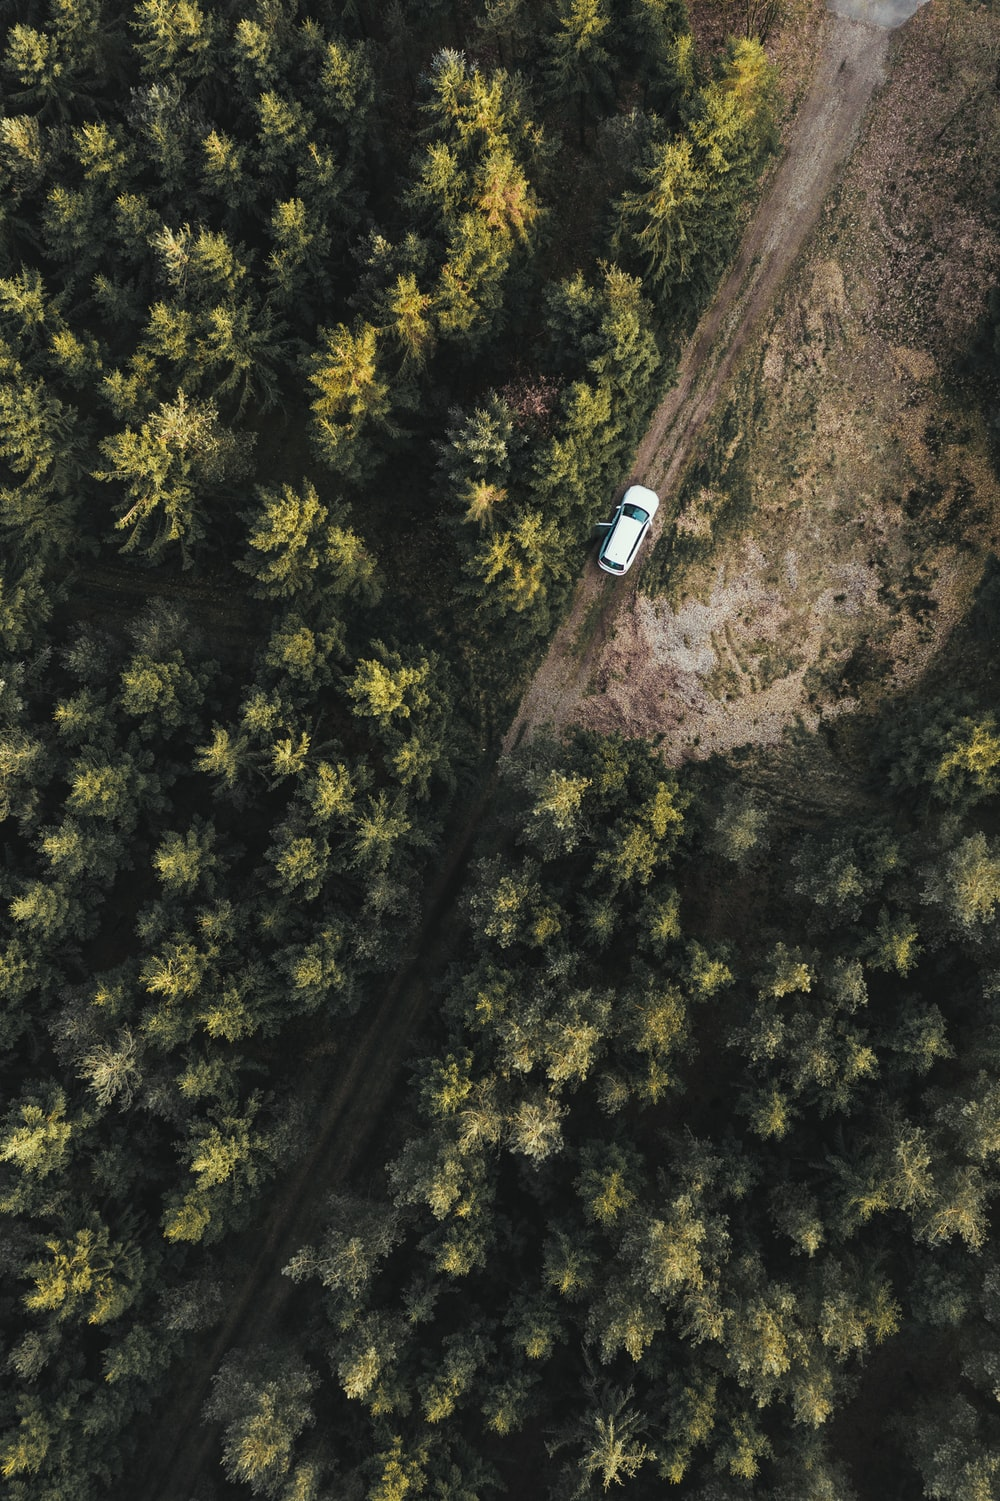 bird's-eye view photography of white car in forest